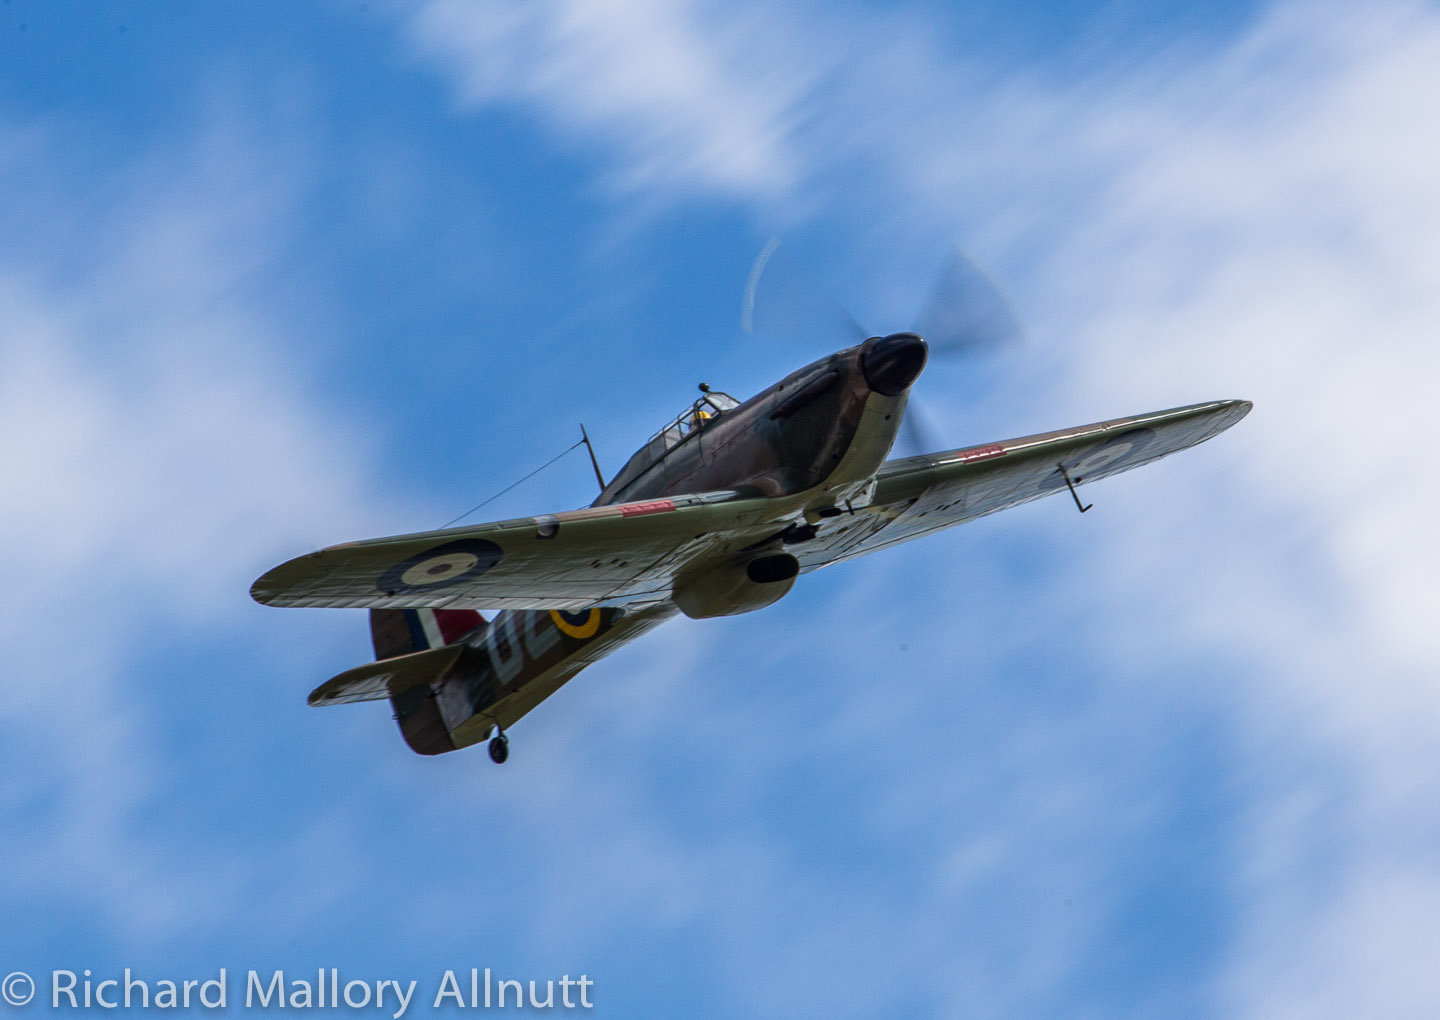 _C8A0322 - Richard Mallory Allnutt photo - Warbirds Over the Beach - Military Aviation Museum - Pungo, VA - May 17, 2014